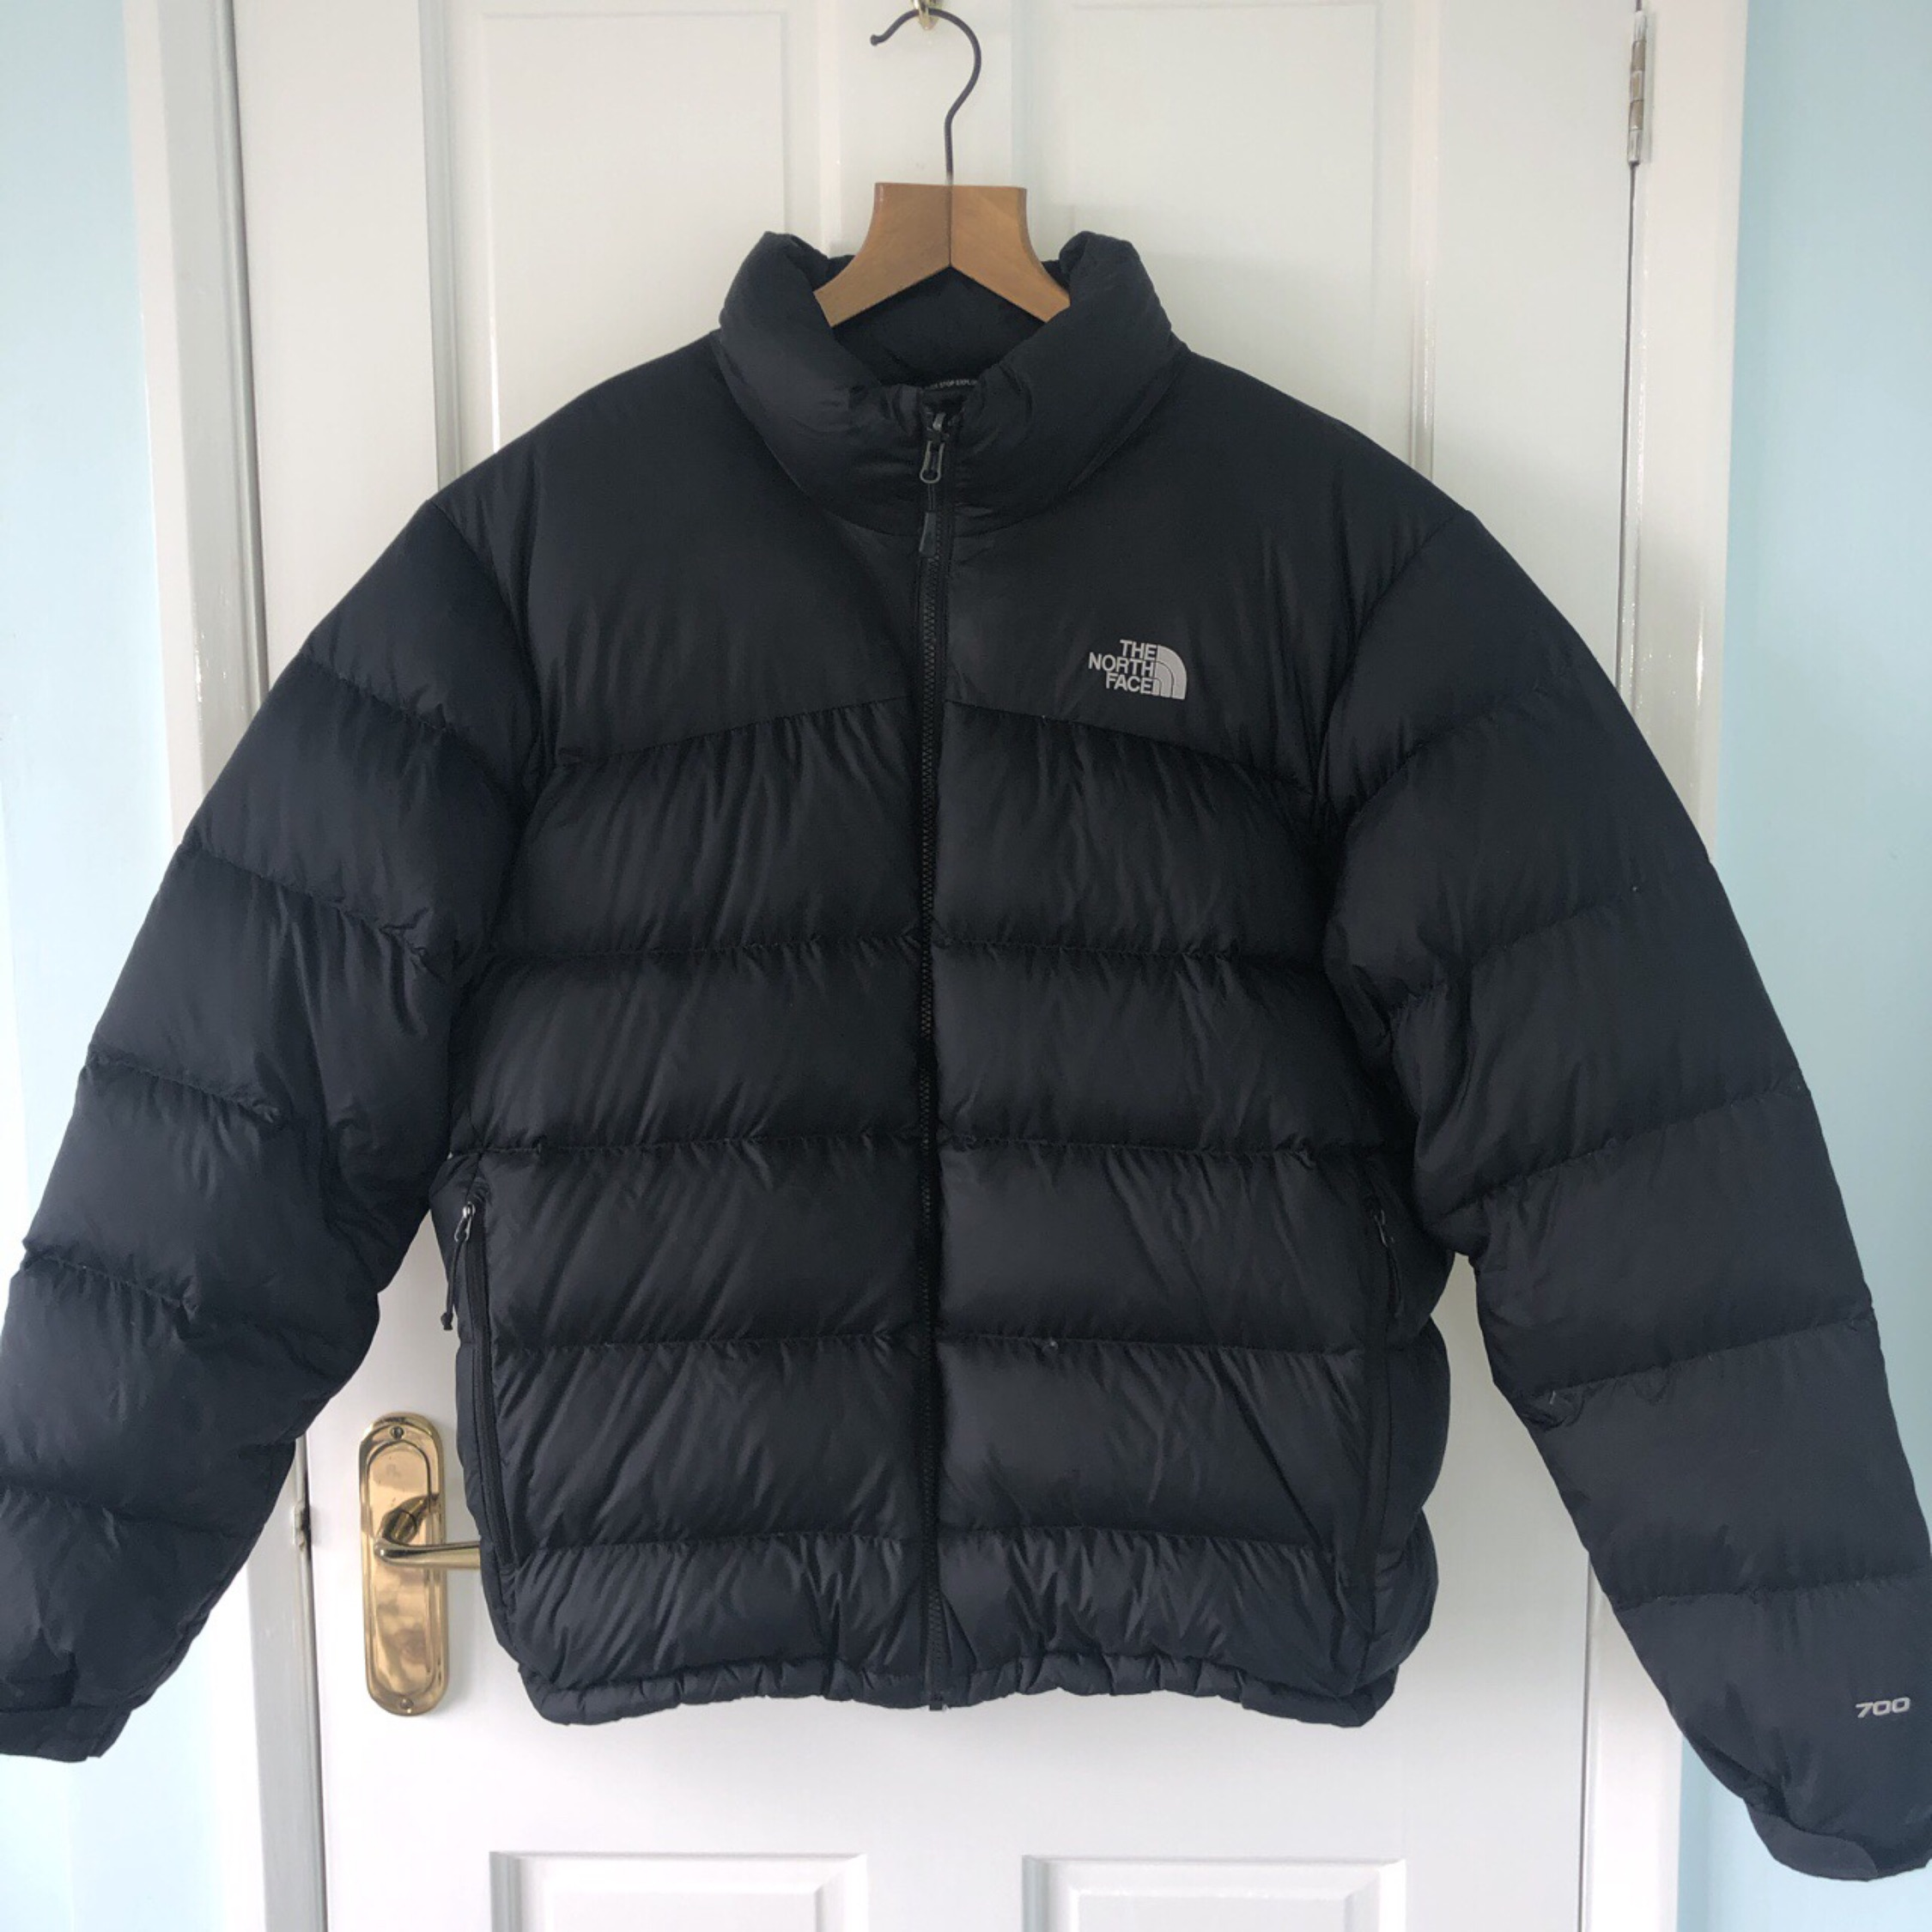 dd0e01ec4 The North Face Nuptse 700 Puffer Jacket 2